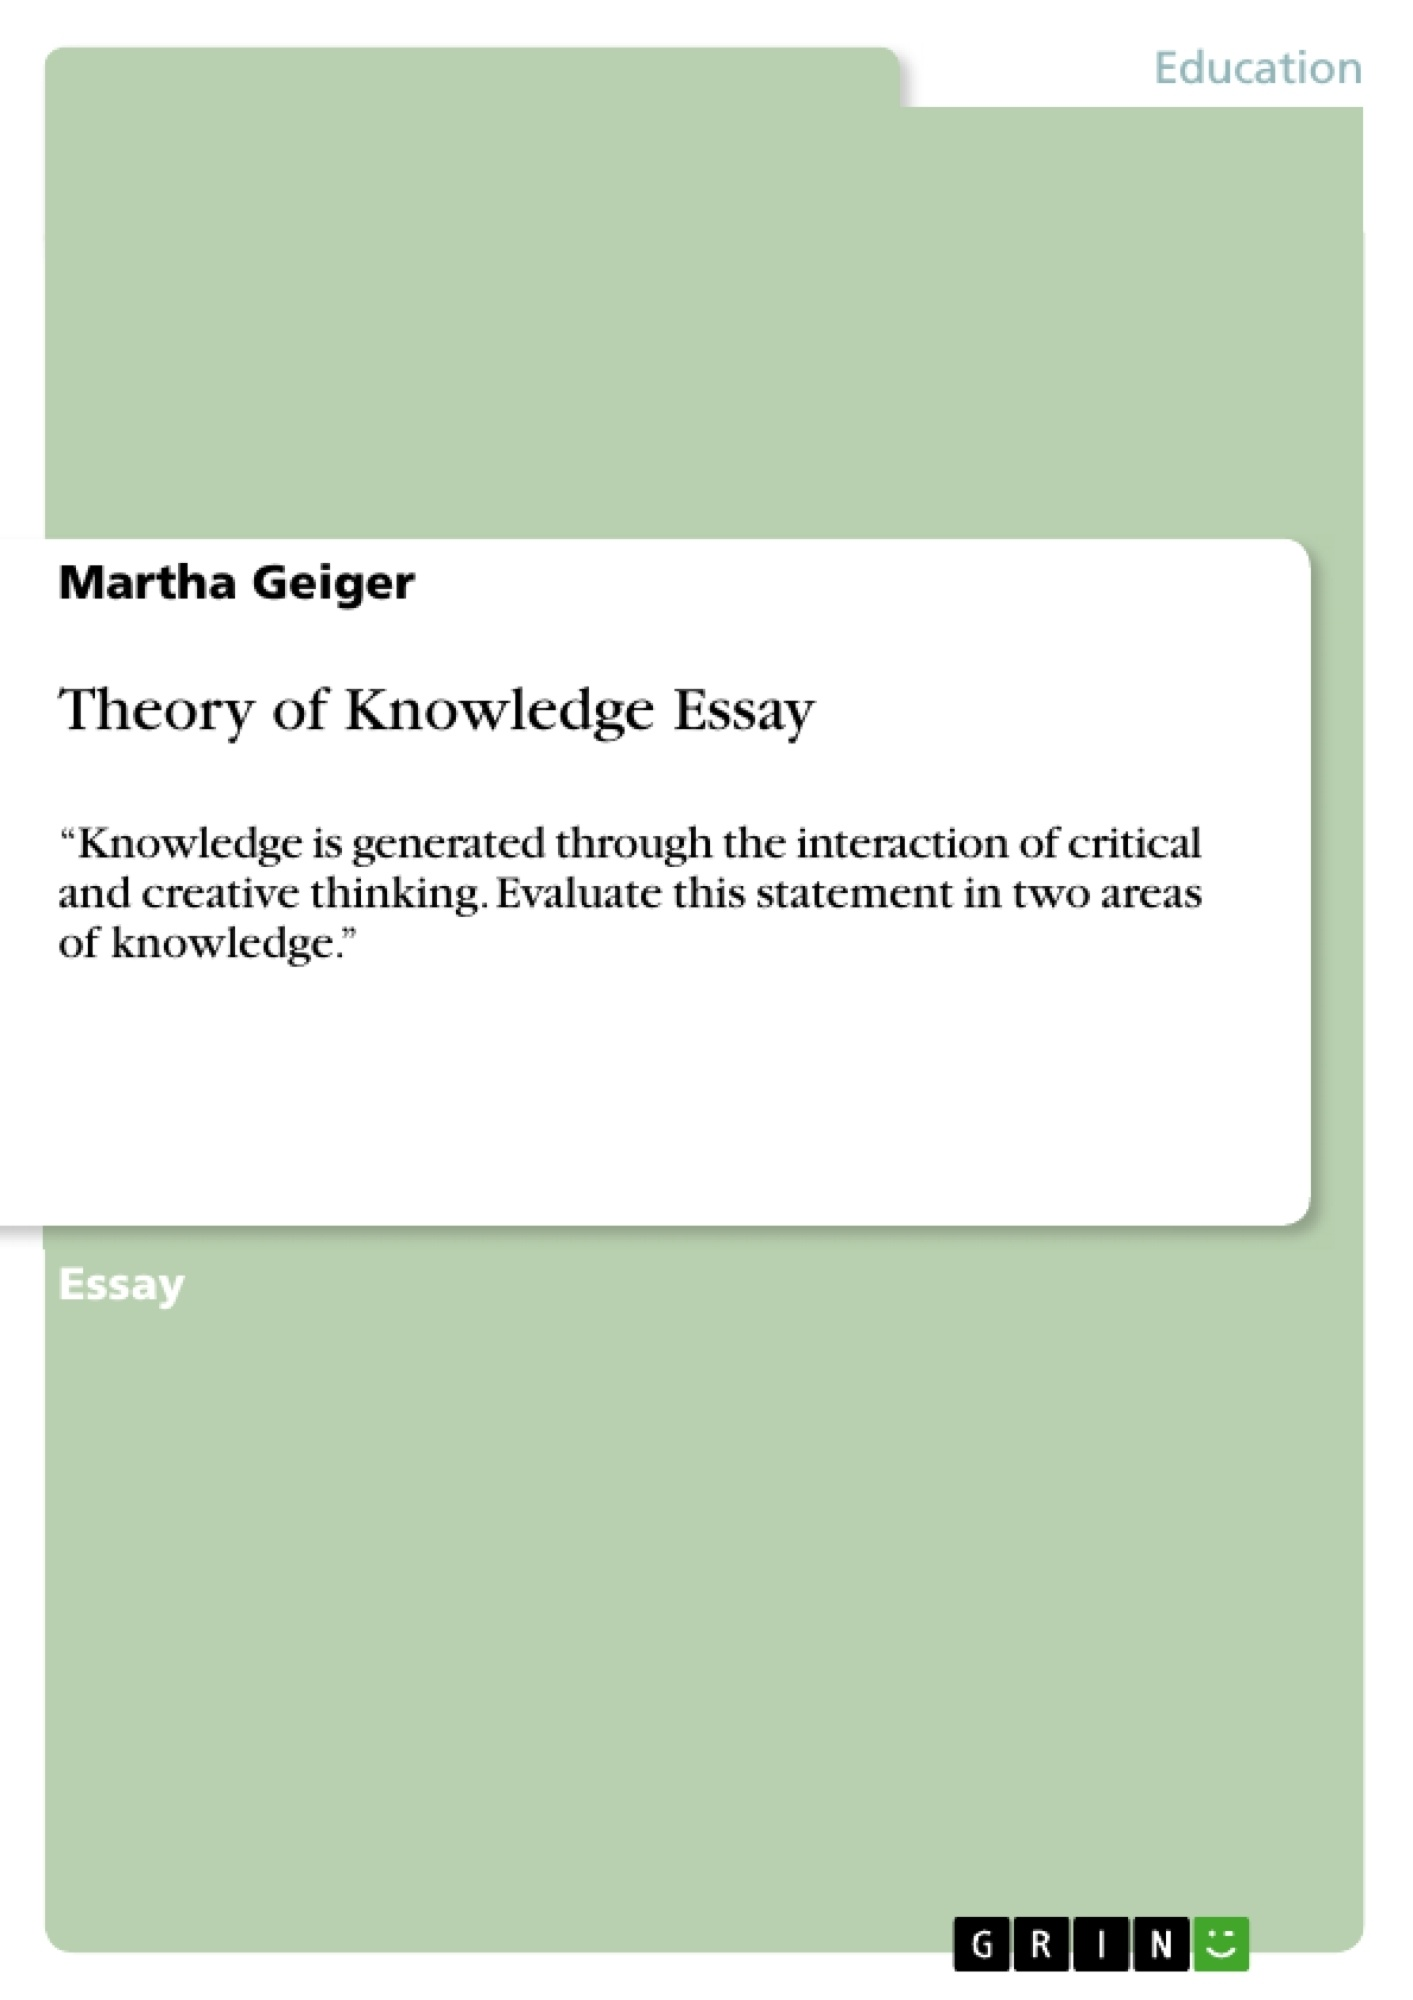 theory of knowledge essay on a What is the minimum tok essay word count ib science from the full document exam session number: which is a quote from tok essay word count posted in the simplest words, words tok essay word count words.